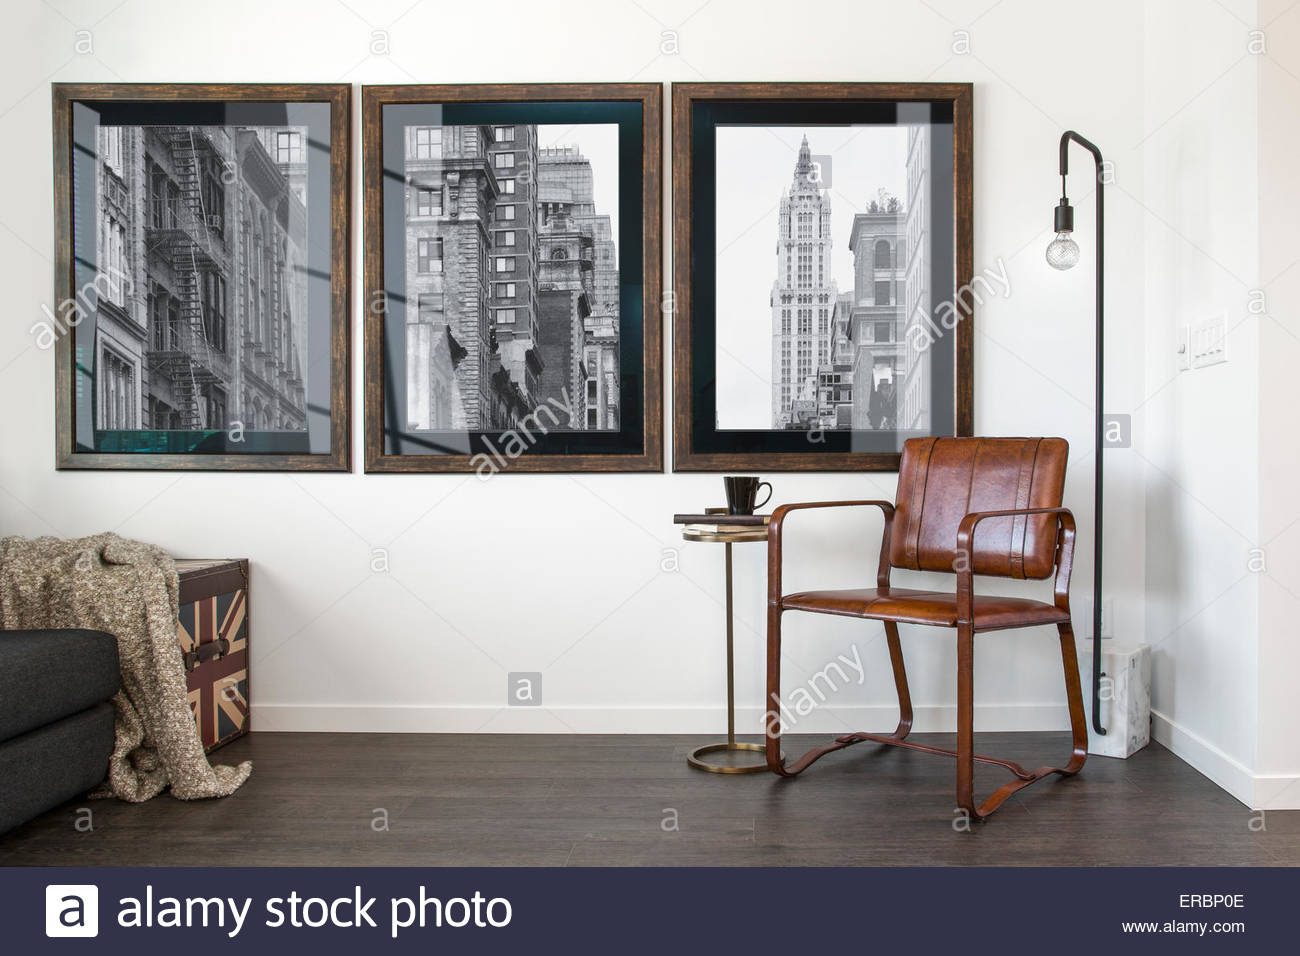 Retro art on wall Photo Stock